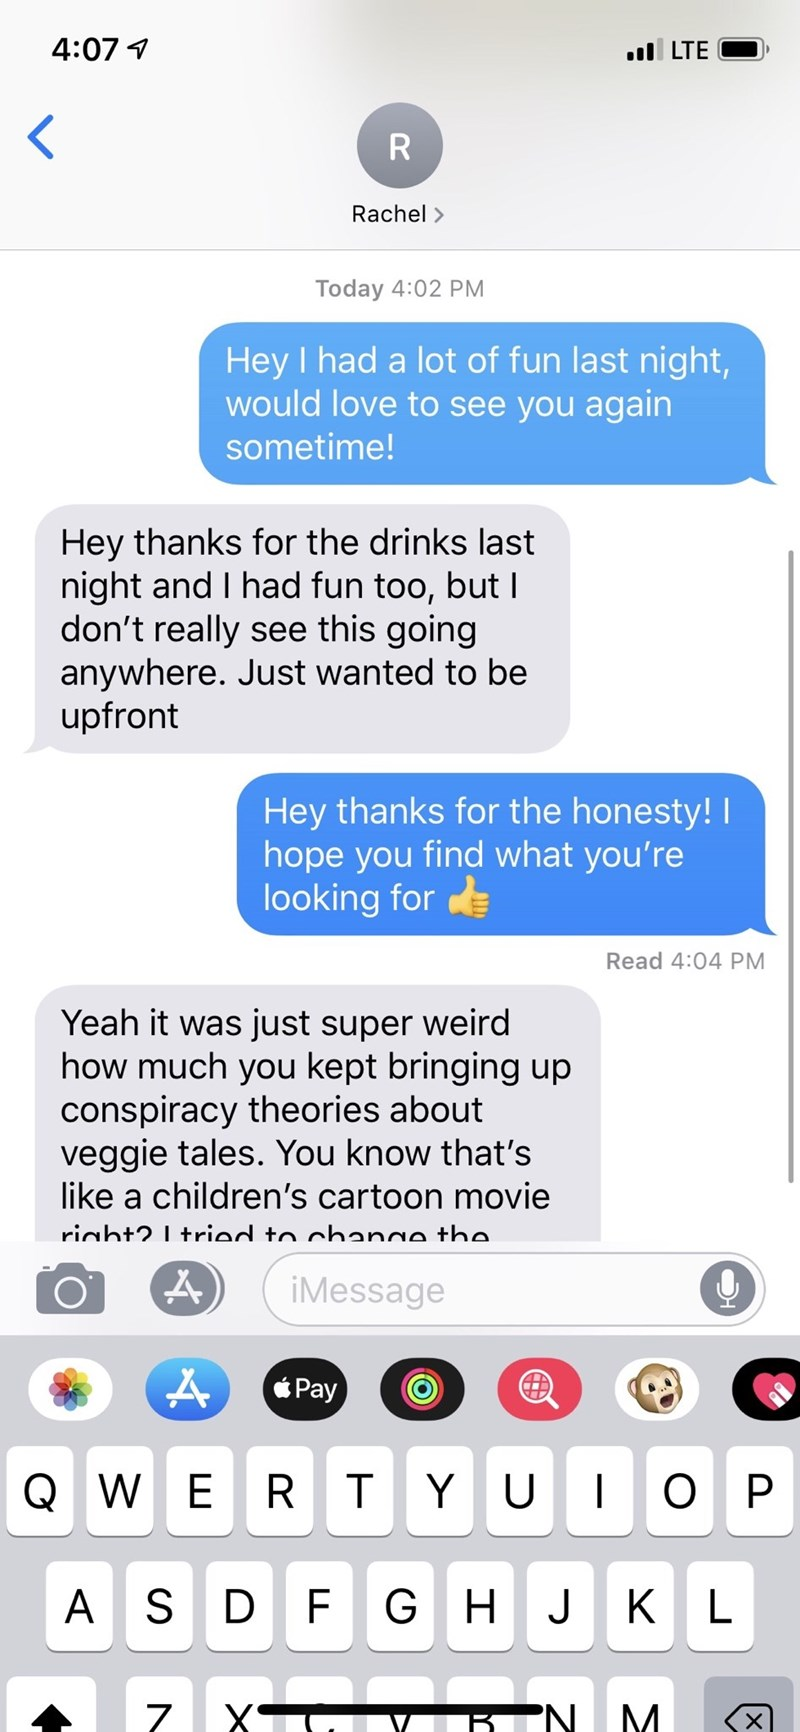 memes - Text - 4:07 l LTE R Rachel> Today 4:02 PM Hey I had a lot of fun last night, would love to see you again sometime! Hey thanks for the drinks last night and I had fun too, but I don't really see this going anywhere. Just wanted to be upfront Hey thanks for the honesty! hope you find what